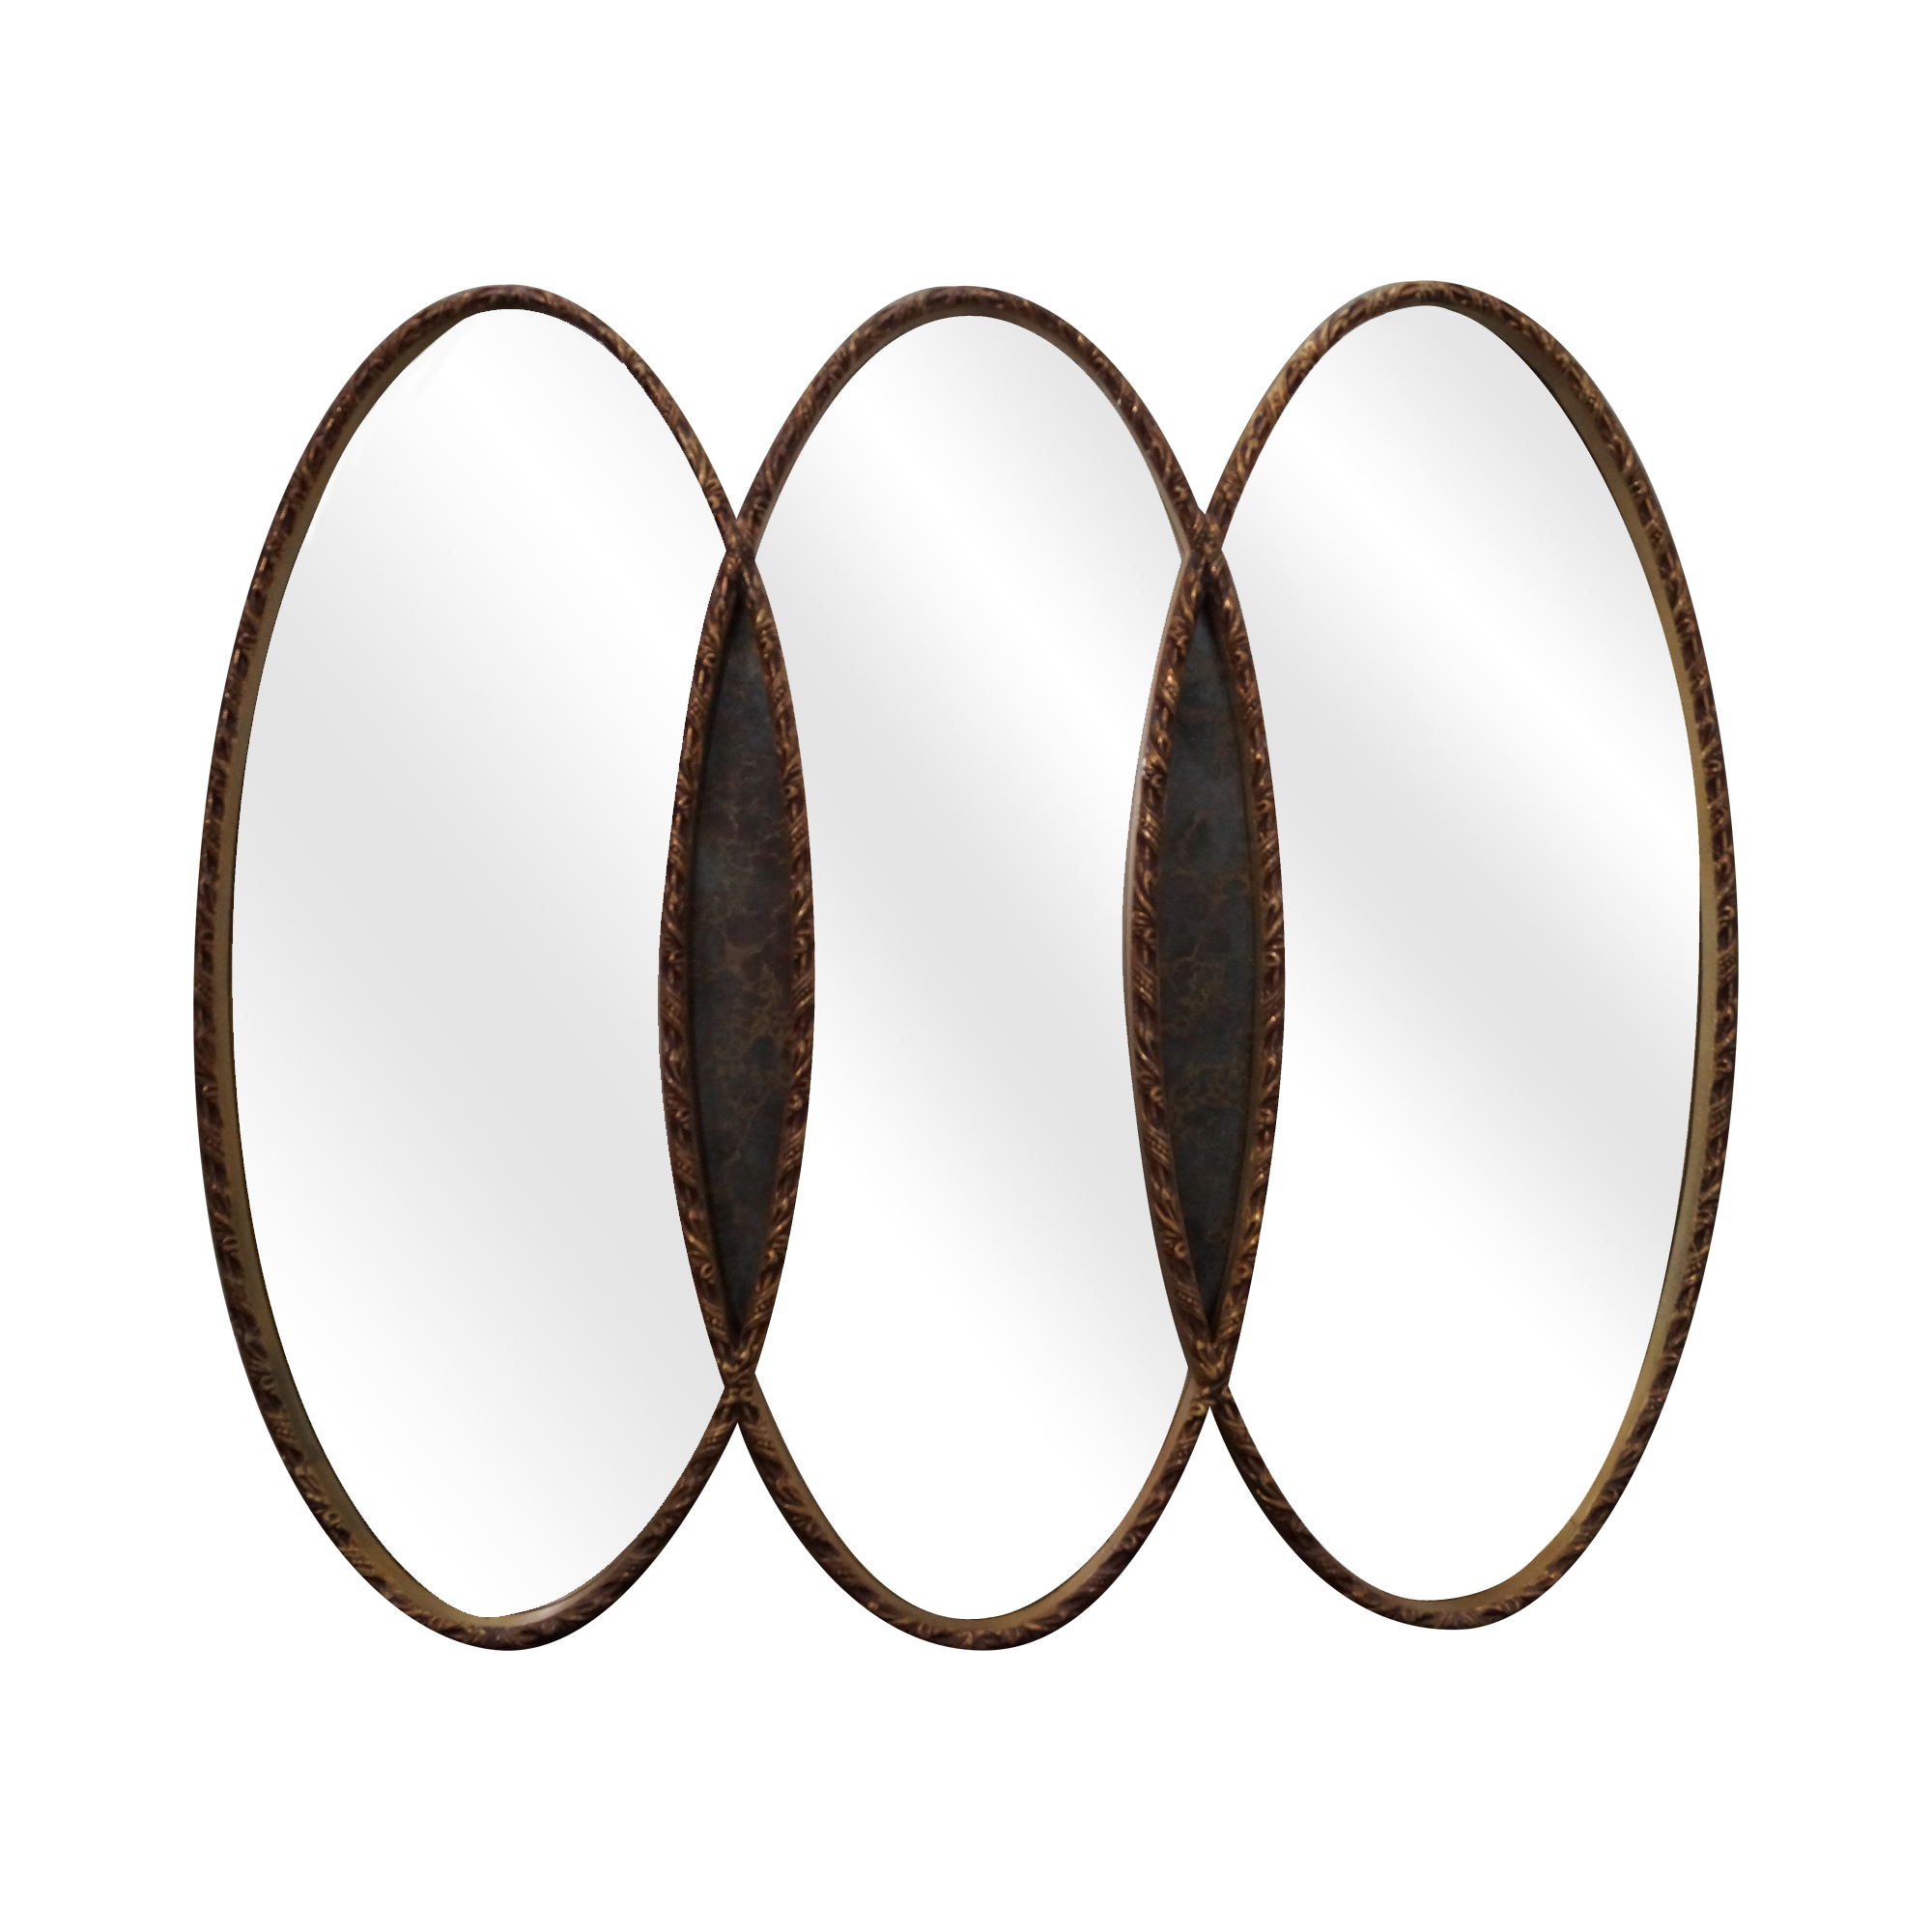 Gold triple interlocking oval wall mirror chairish amipublicfo Choice Image